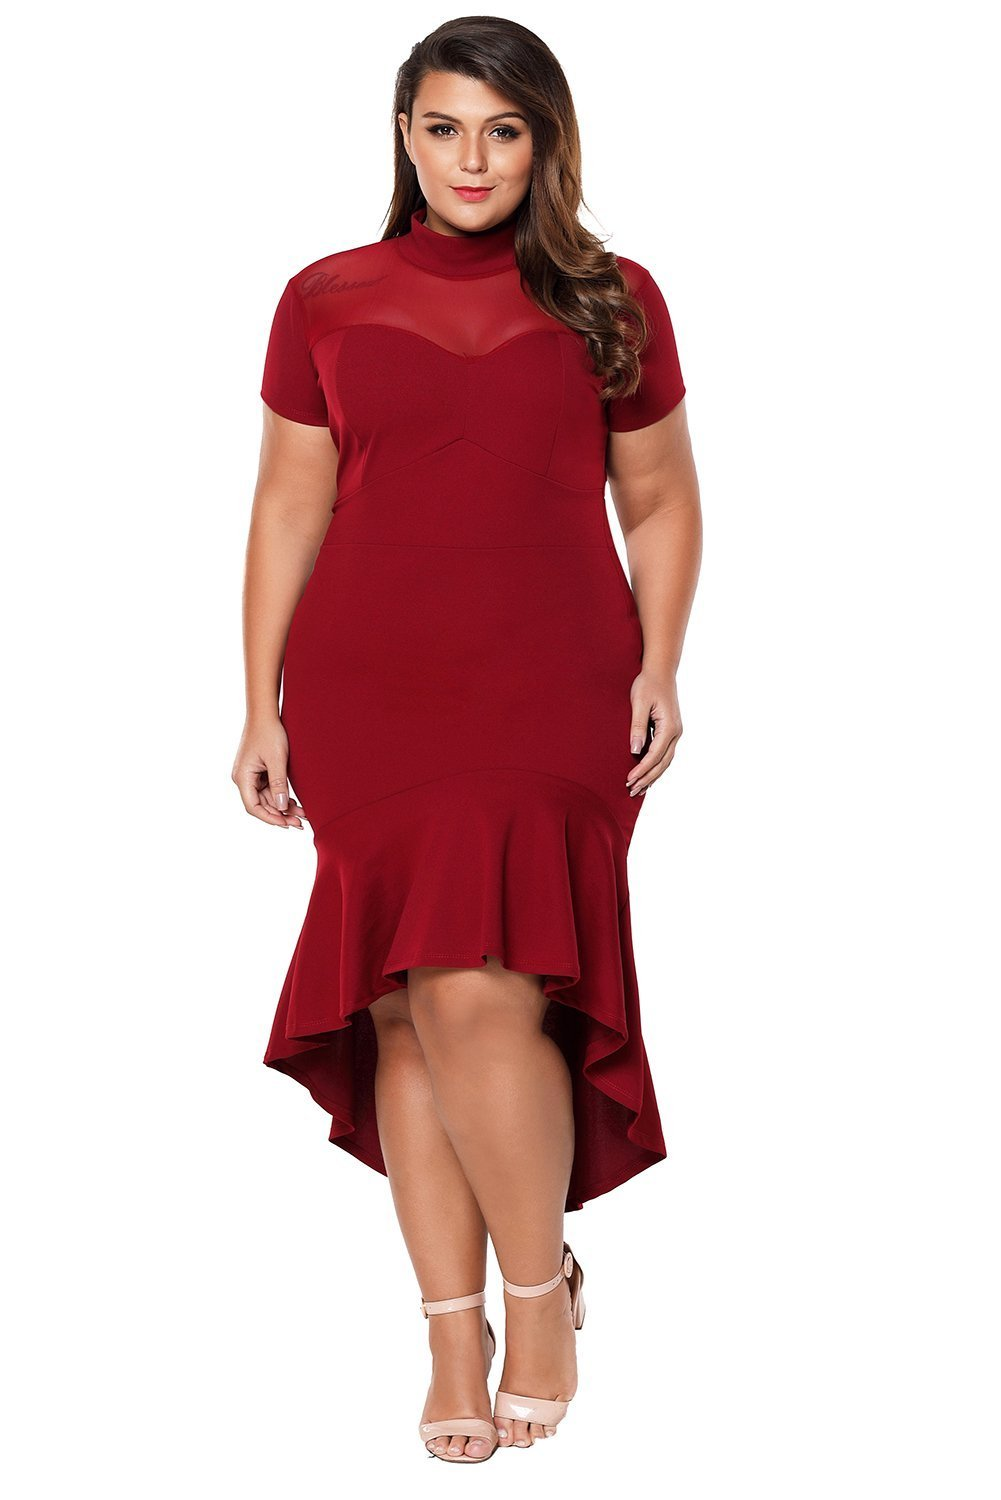 plus size Bodycon Dress XL / AUS 14 - 16 / Wine Red Simone Hi-Low Hem Dress - Wine Red